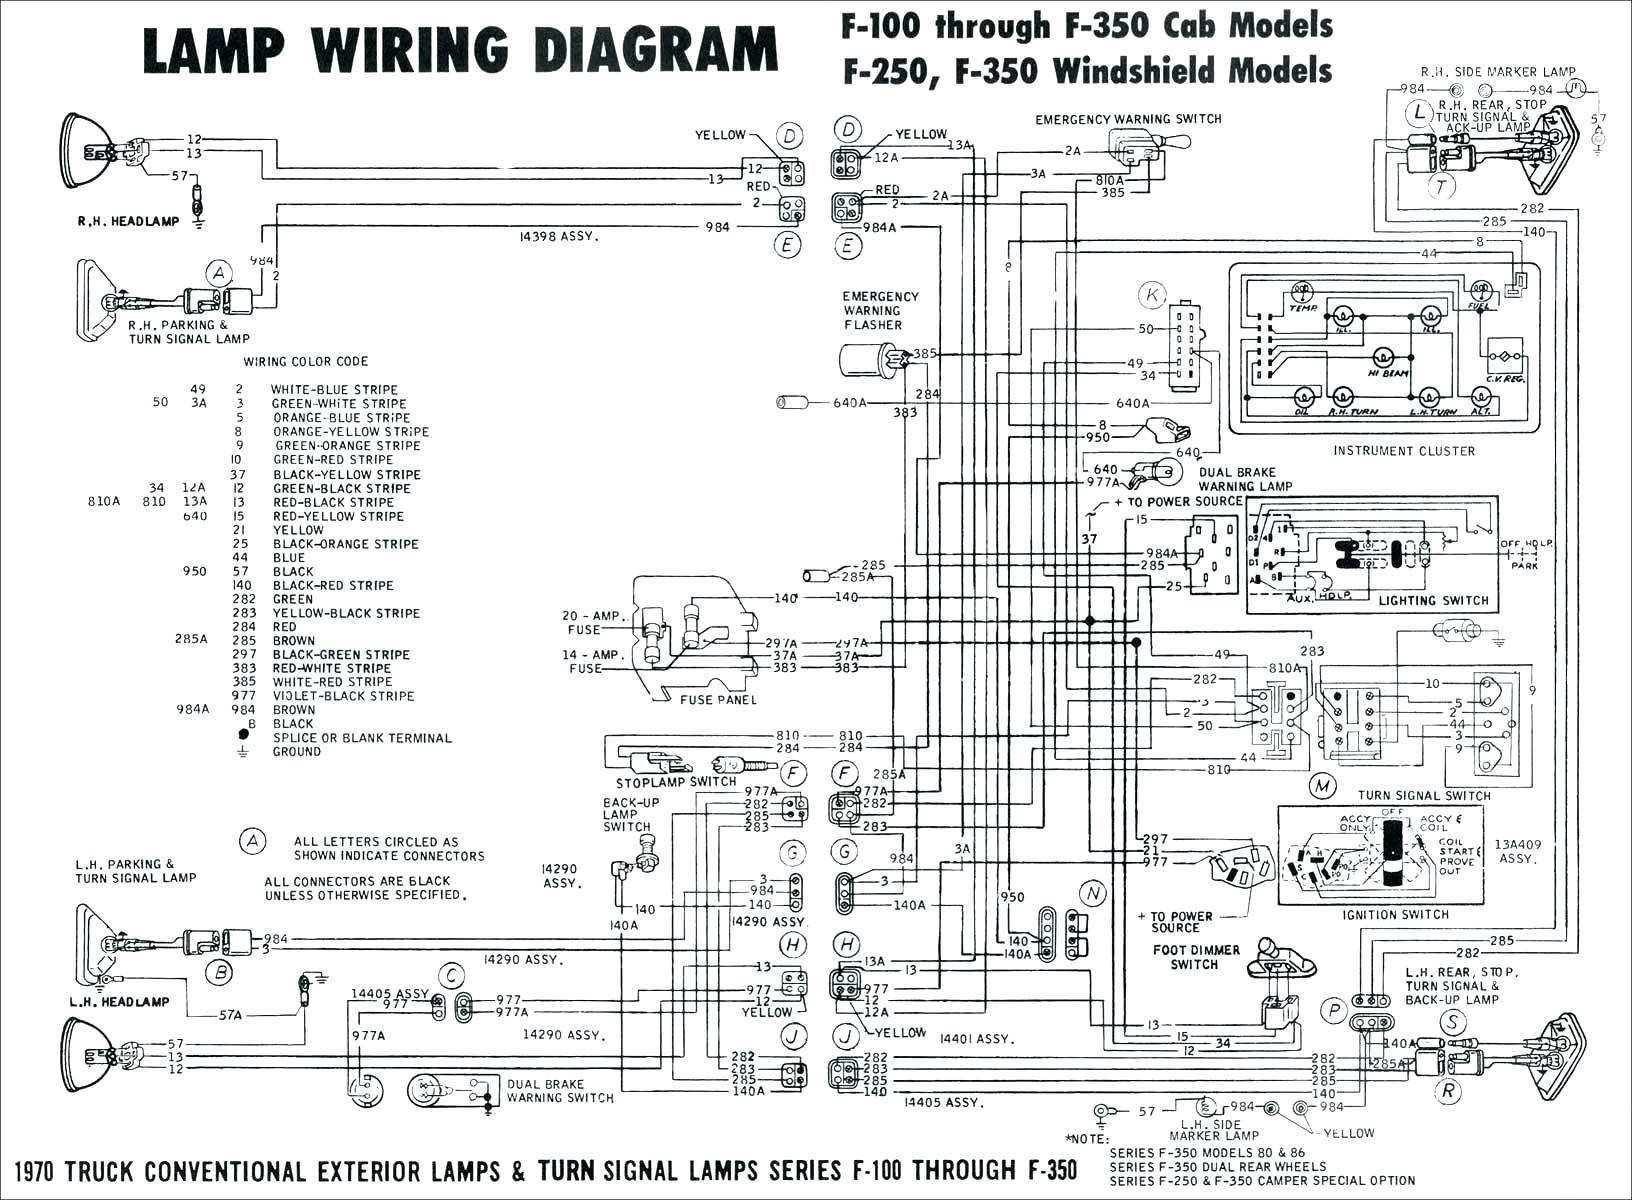 Golf Cart Turn Signal Wiring Diagram 1978 F100 Wiring Diagram Another Blog About Wiring Diagram • Of Golf Cart Turn Signal Wiring Diagram 1951 ford Brake Wiring Diagram Another Blog About Wiring Diagram •